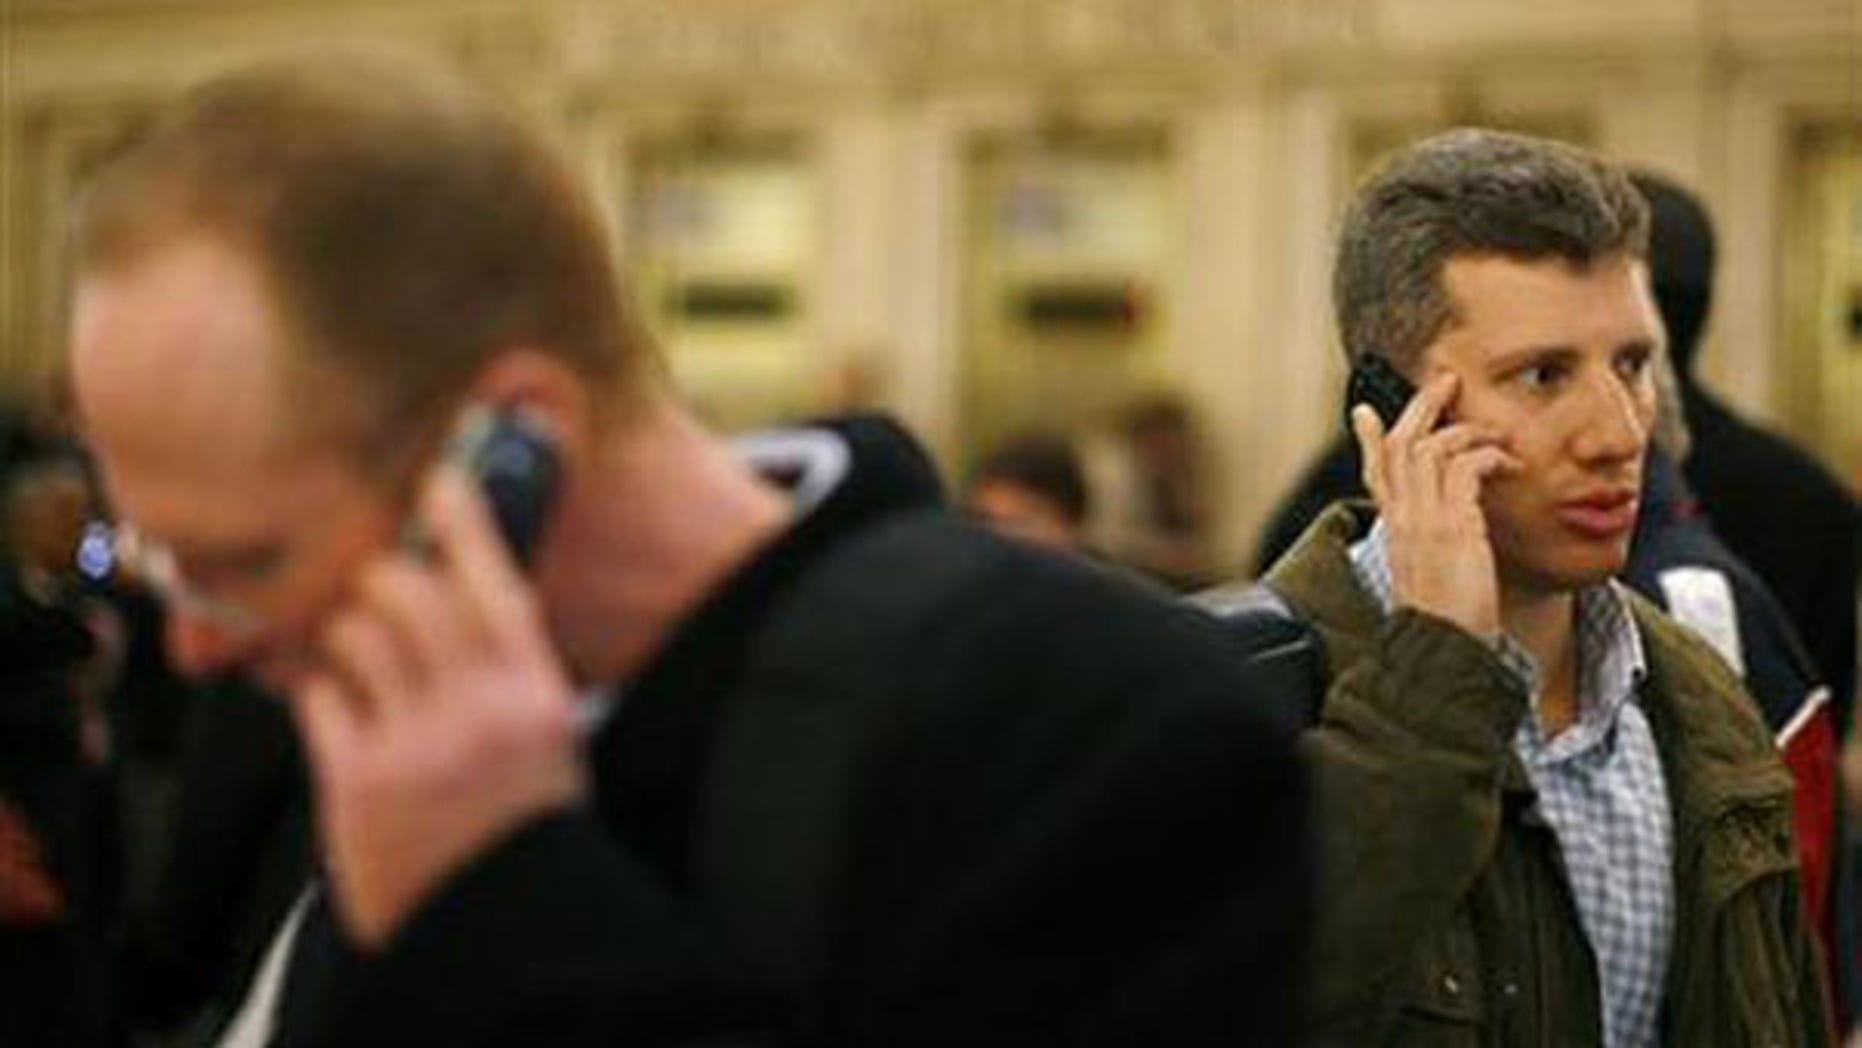 Two men talk on cell phones inside Grand Central Station in New York in this March 4, 2008, file photo. (Reuters Photo)